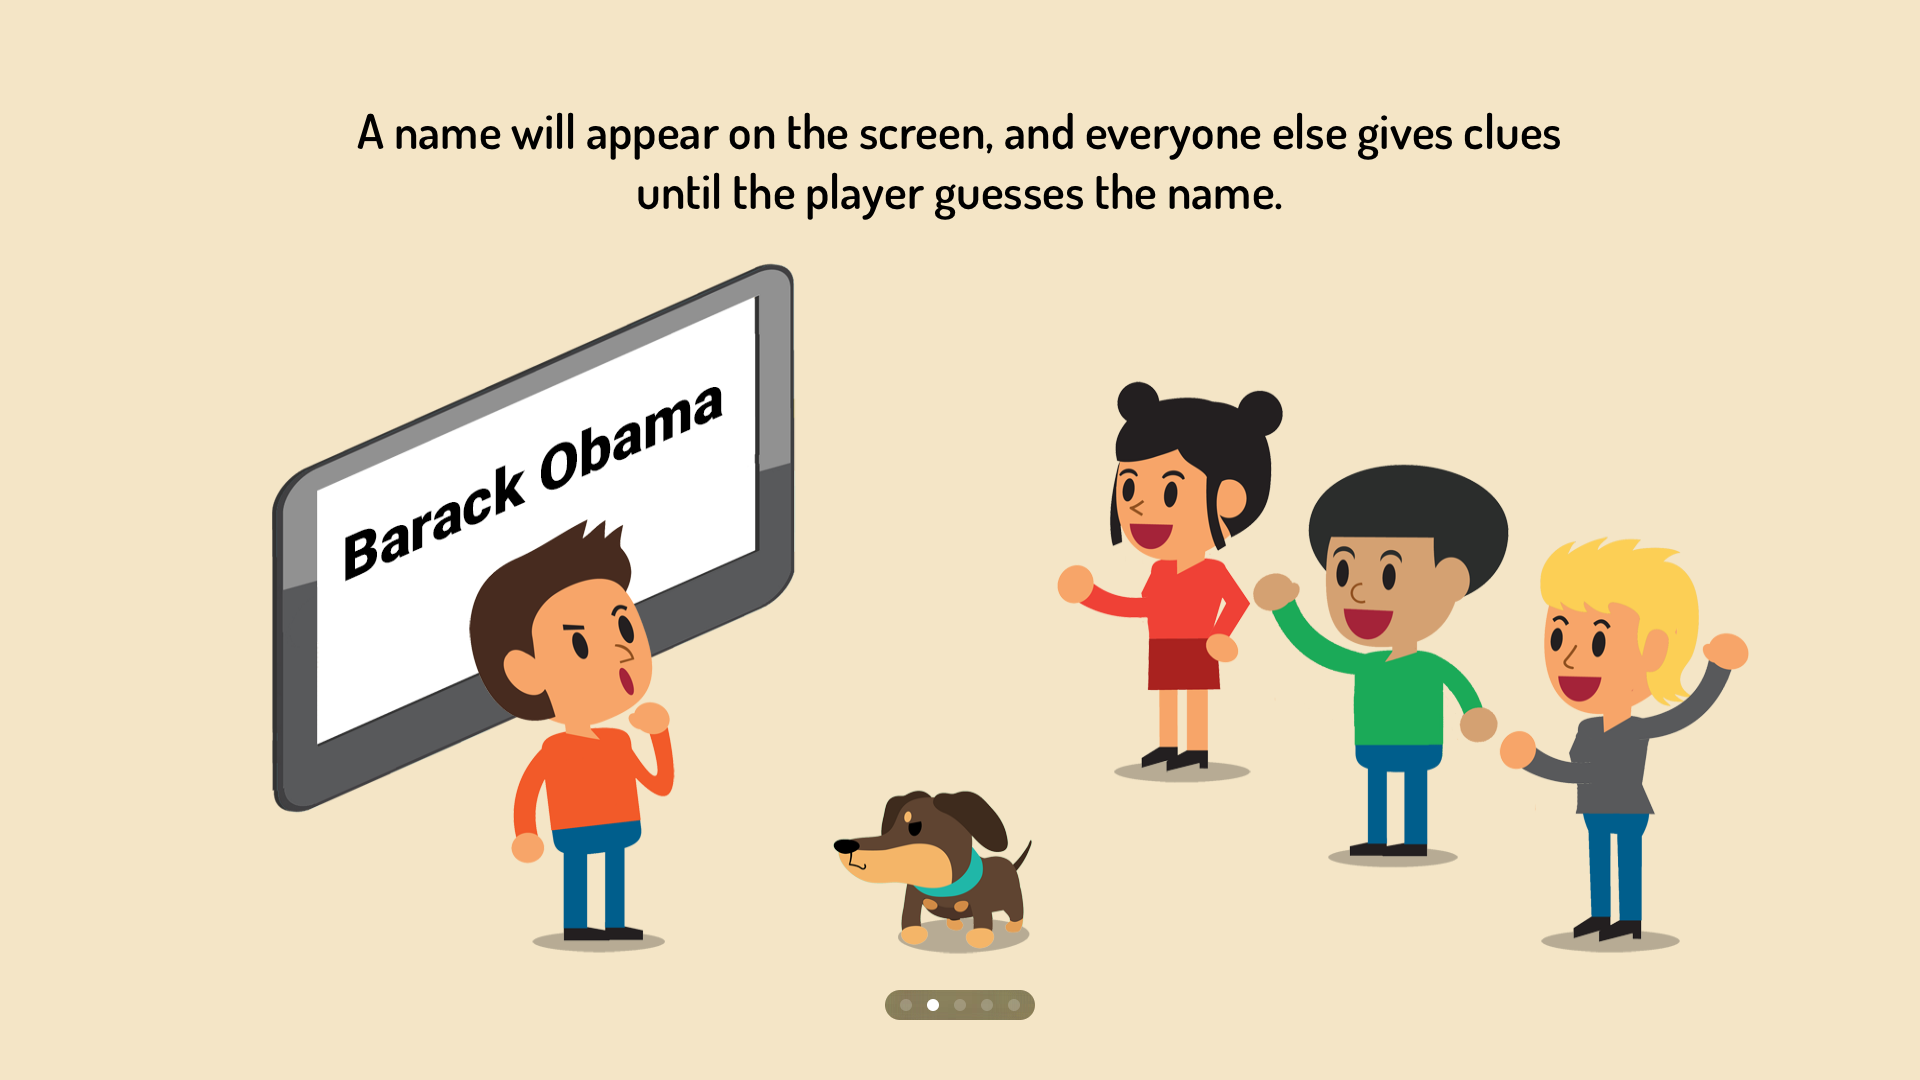 imperson8 - Family Party Game screenshot 12